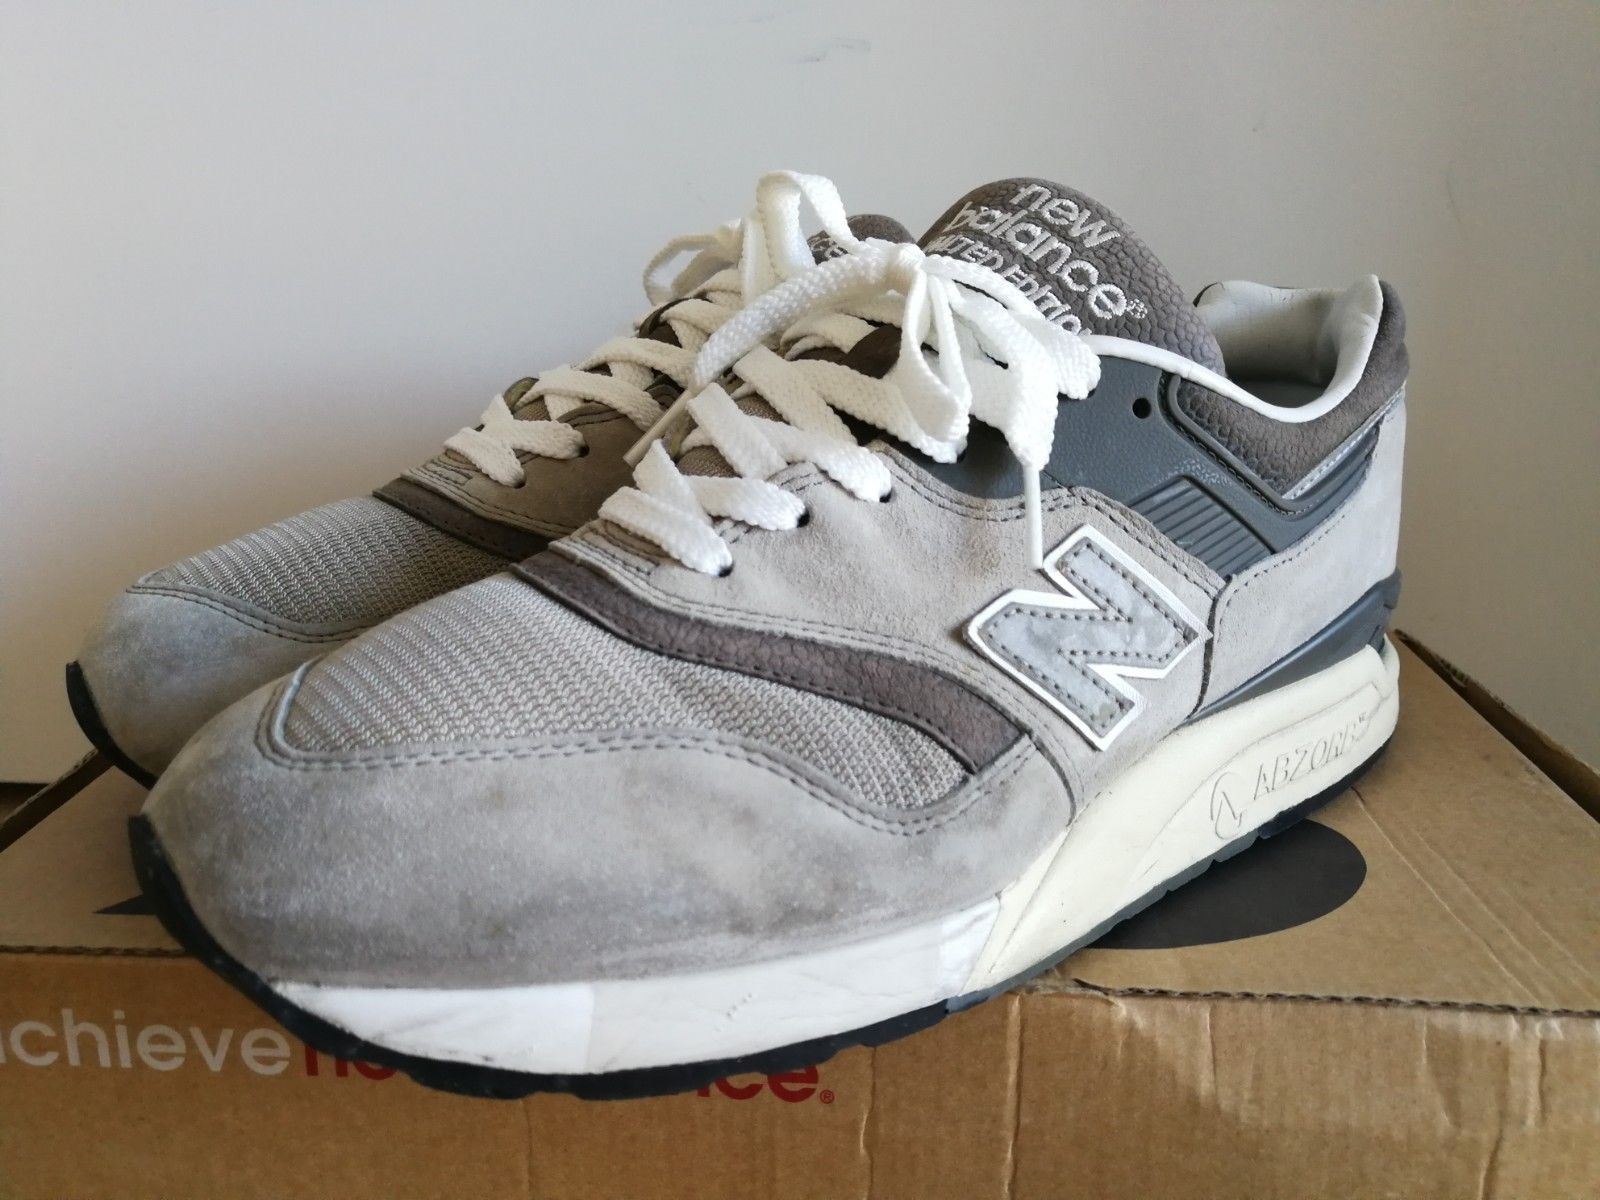 brand new 97f53 df9b6 Details about 2009 New Balance CM997.5NUG United Arrows Co ...